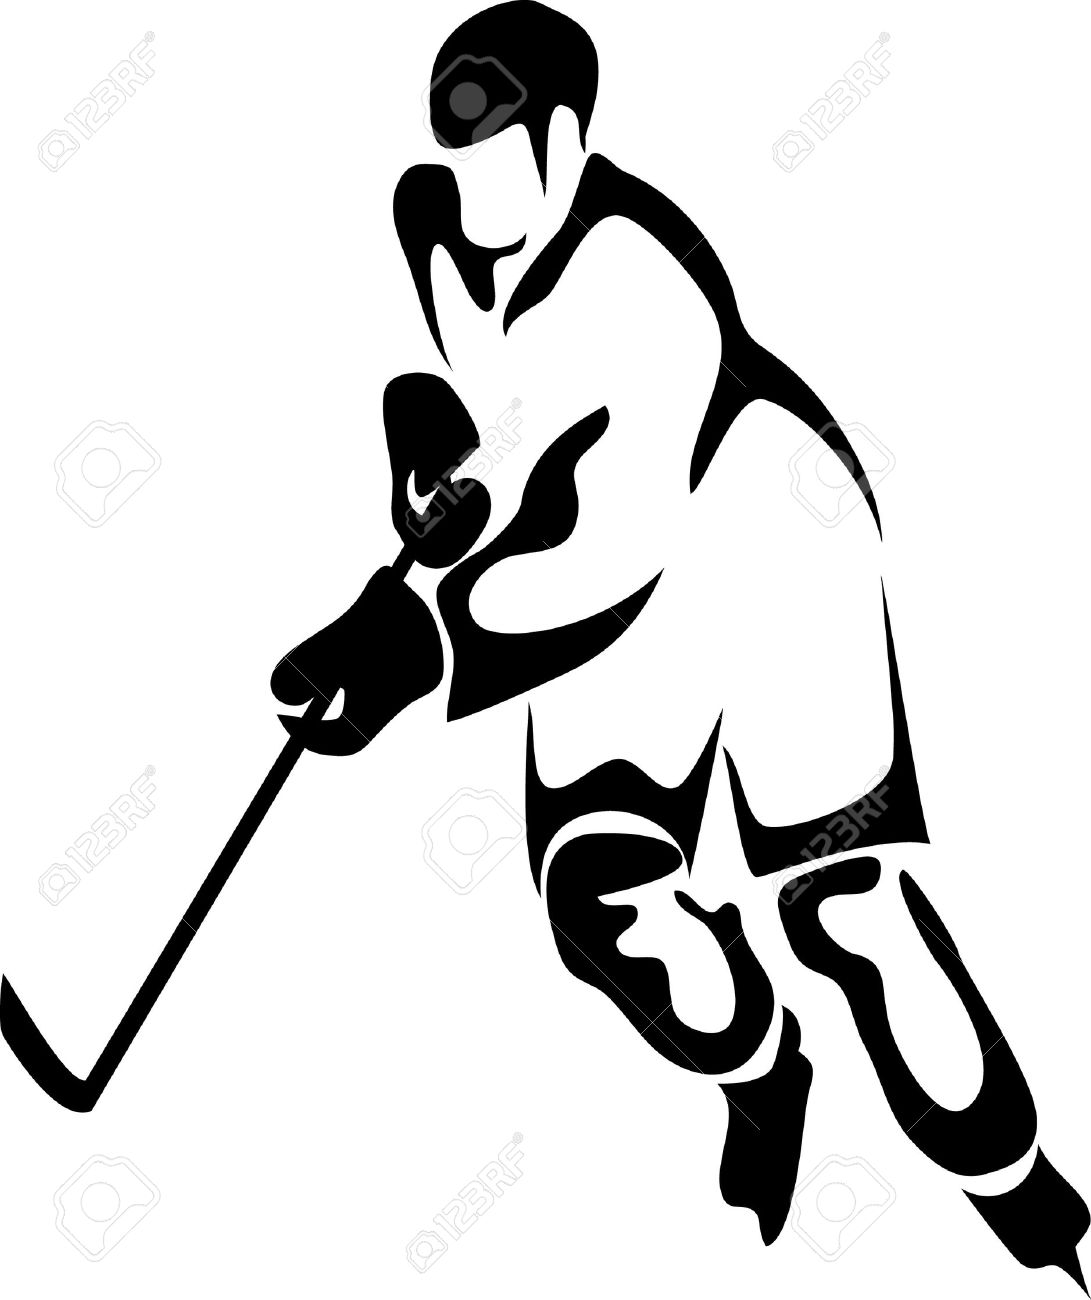 Ice hockey player clipart.